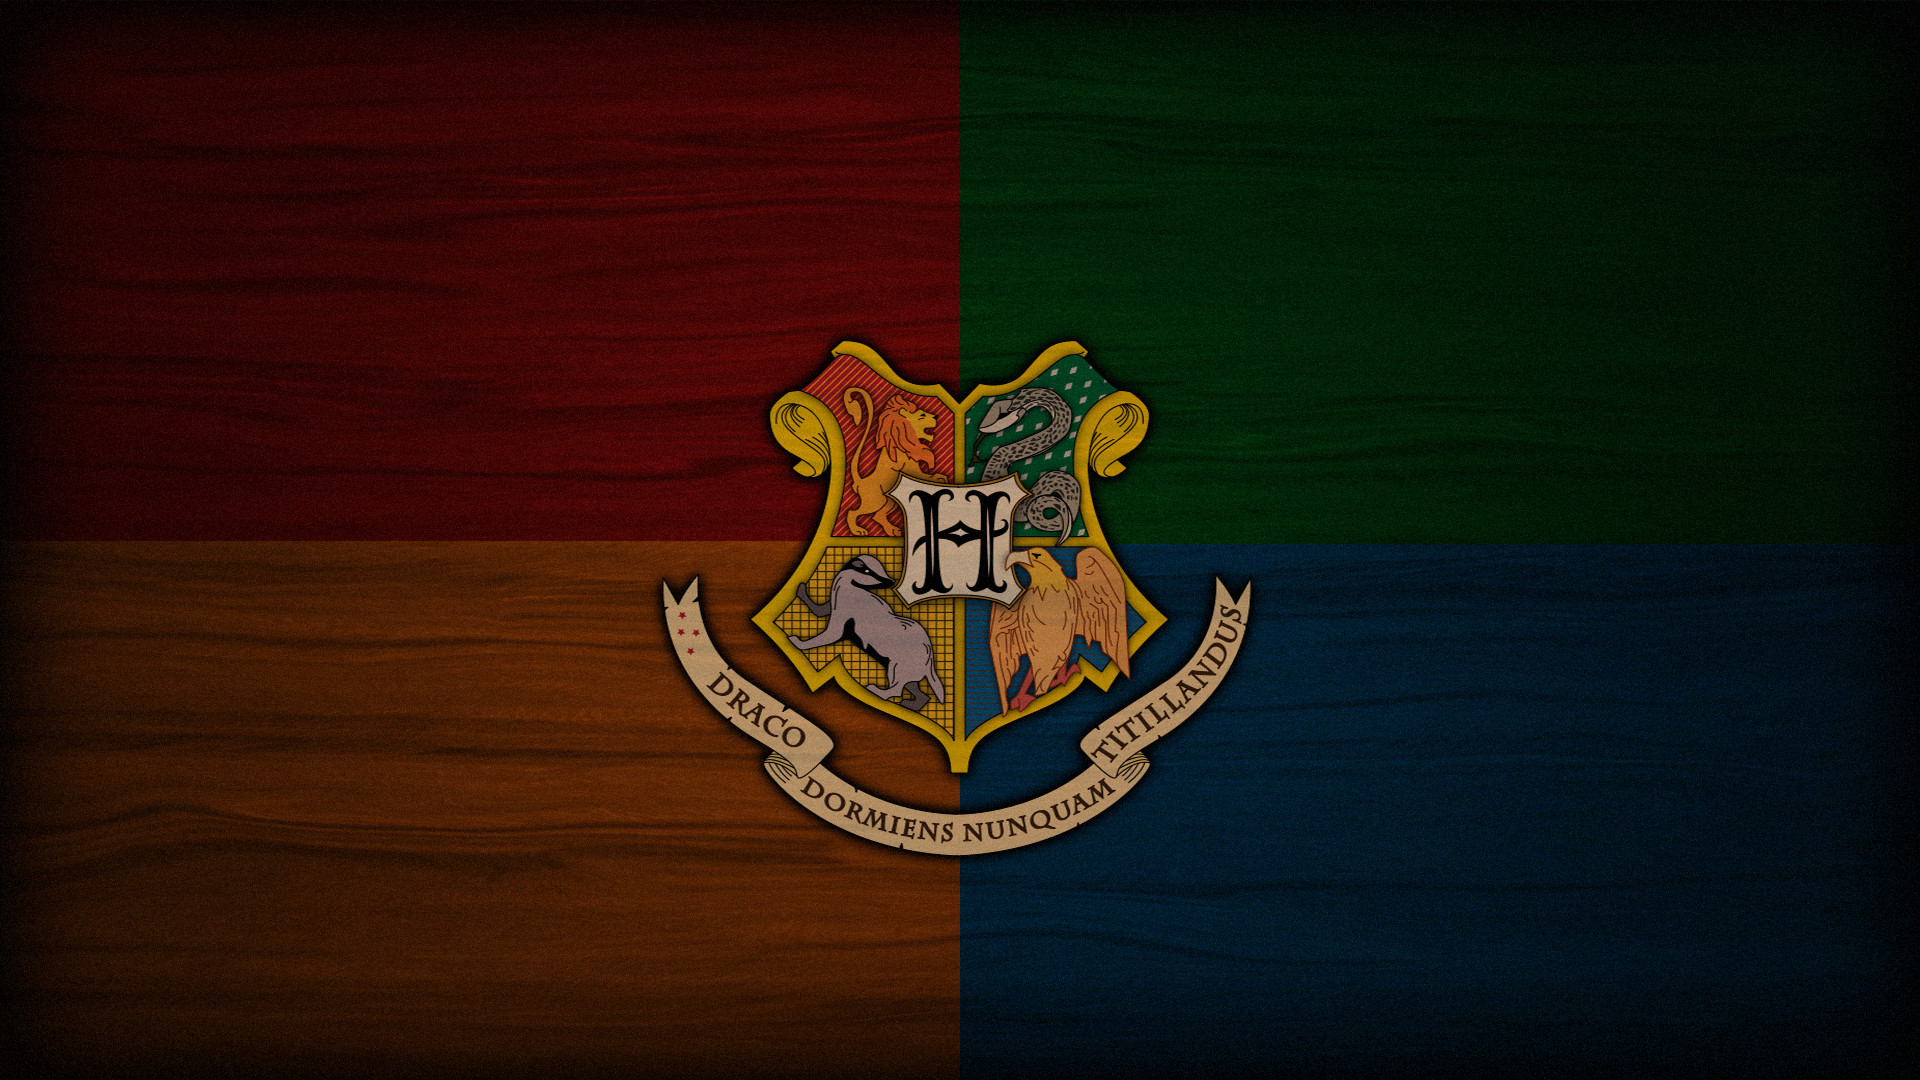 1920x1080 Hogwarts wallpaper I put together () : harrypotter